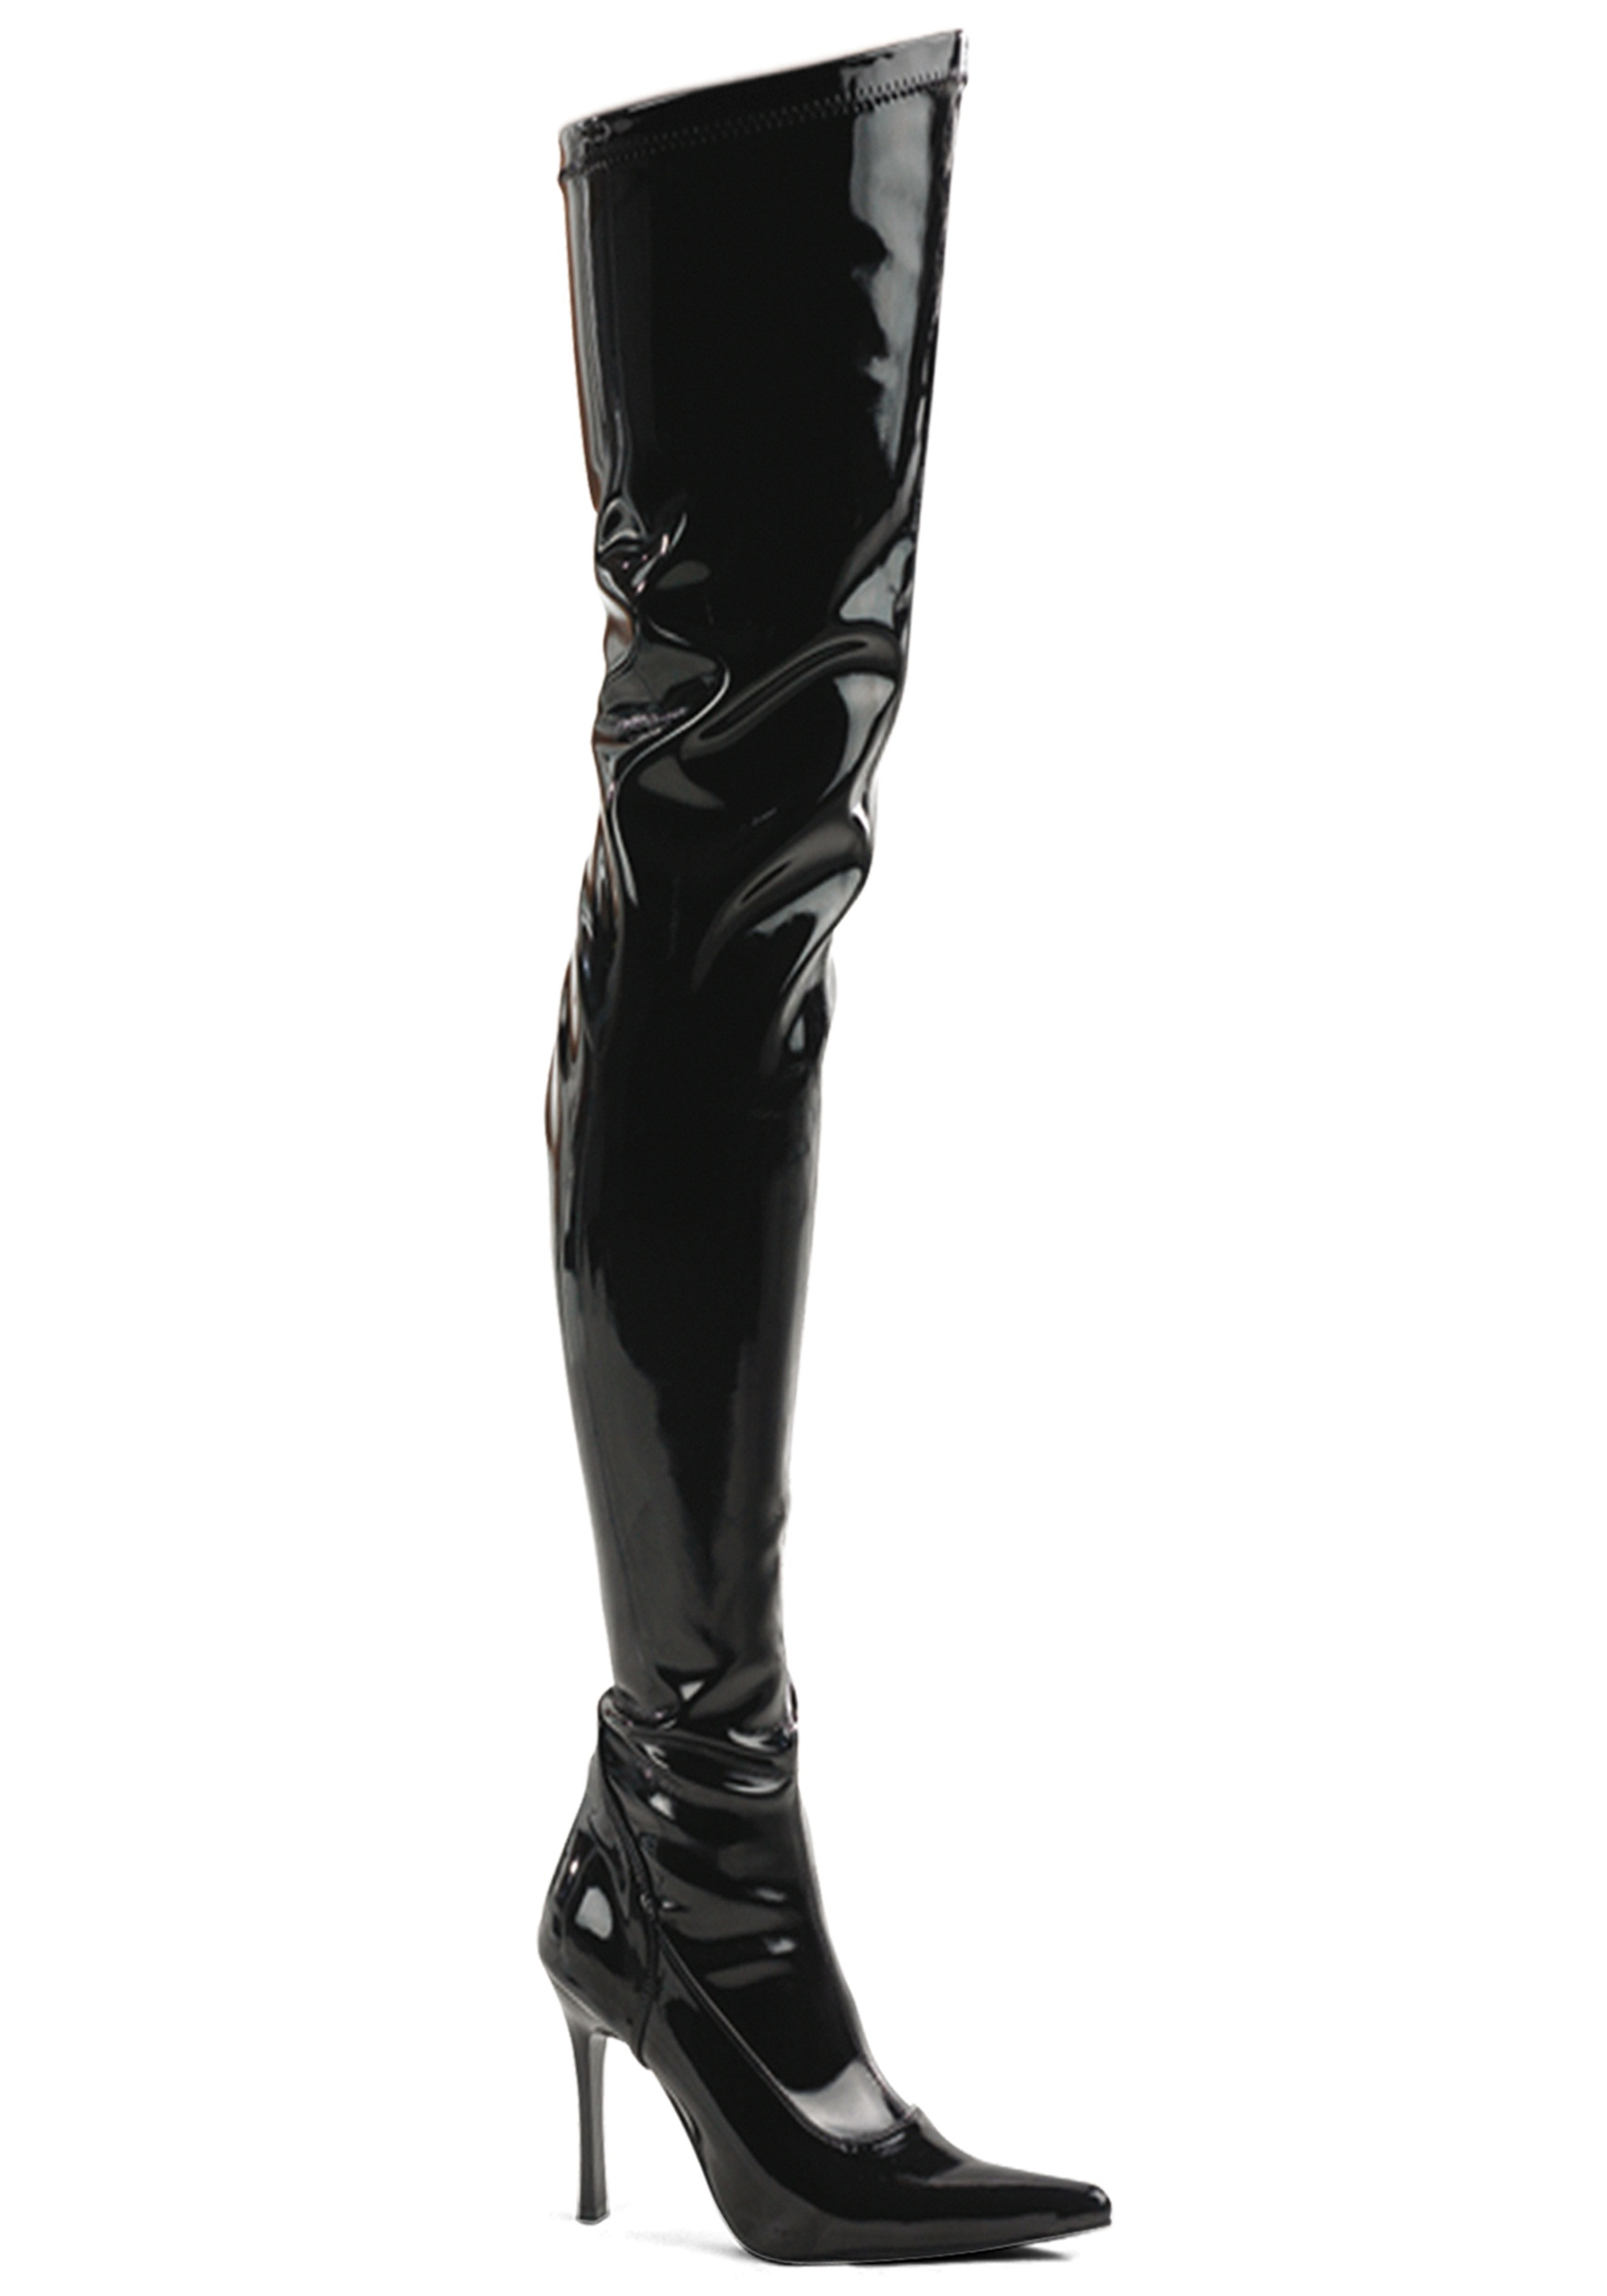 Black Patent Over the Knee Costume Boot for Women